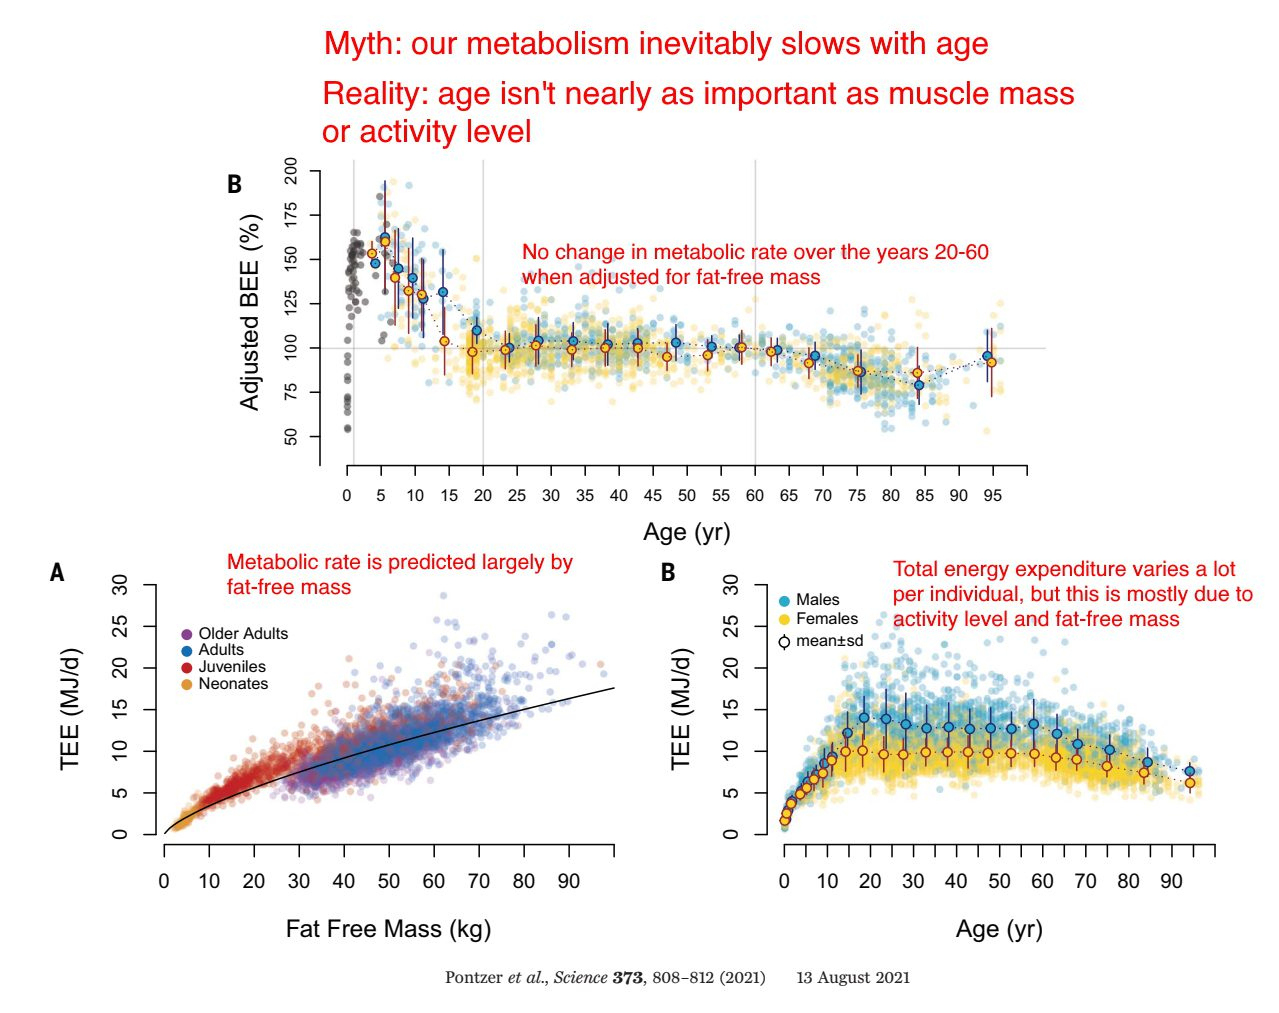 Metabolism with age